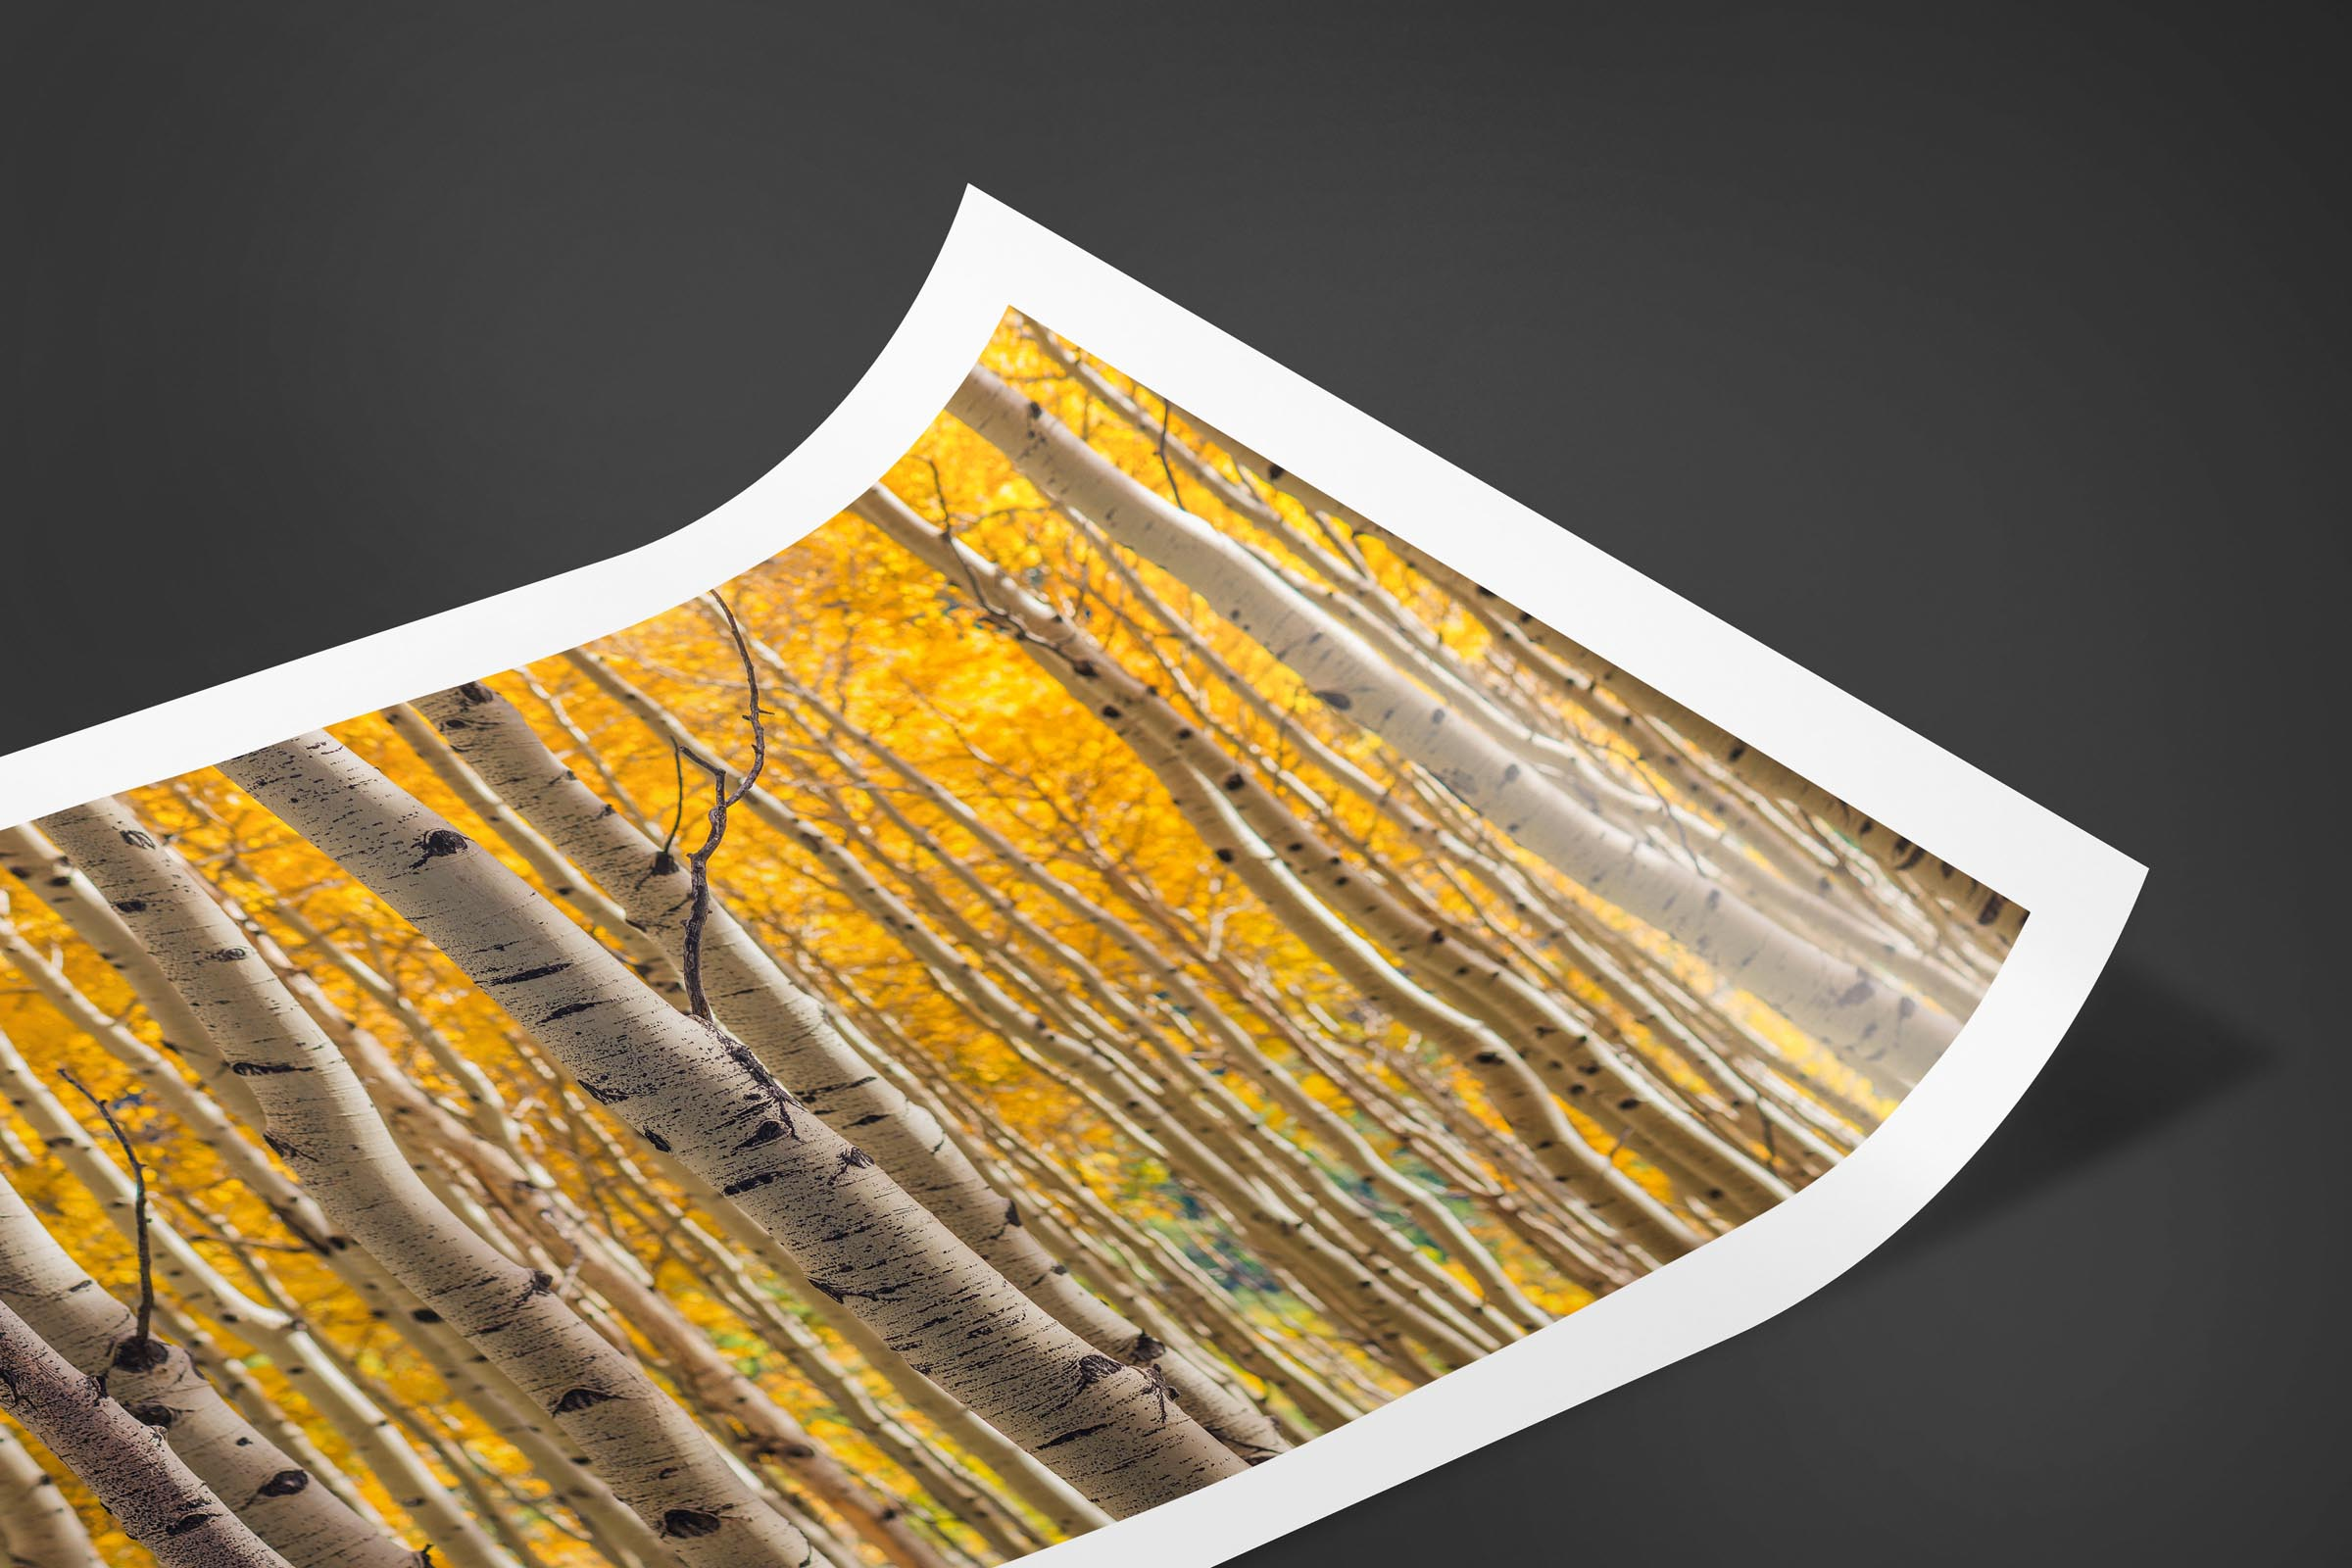 Fine art limited edition print of Aspen Grove in San Juan Mountains, Colorado by Brent Goldman Photography